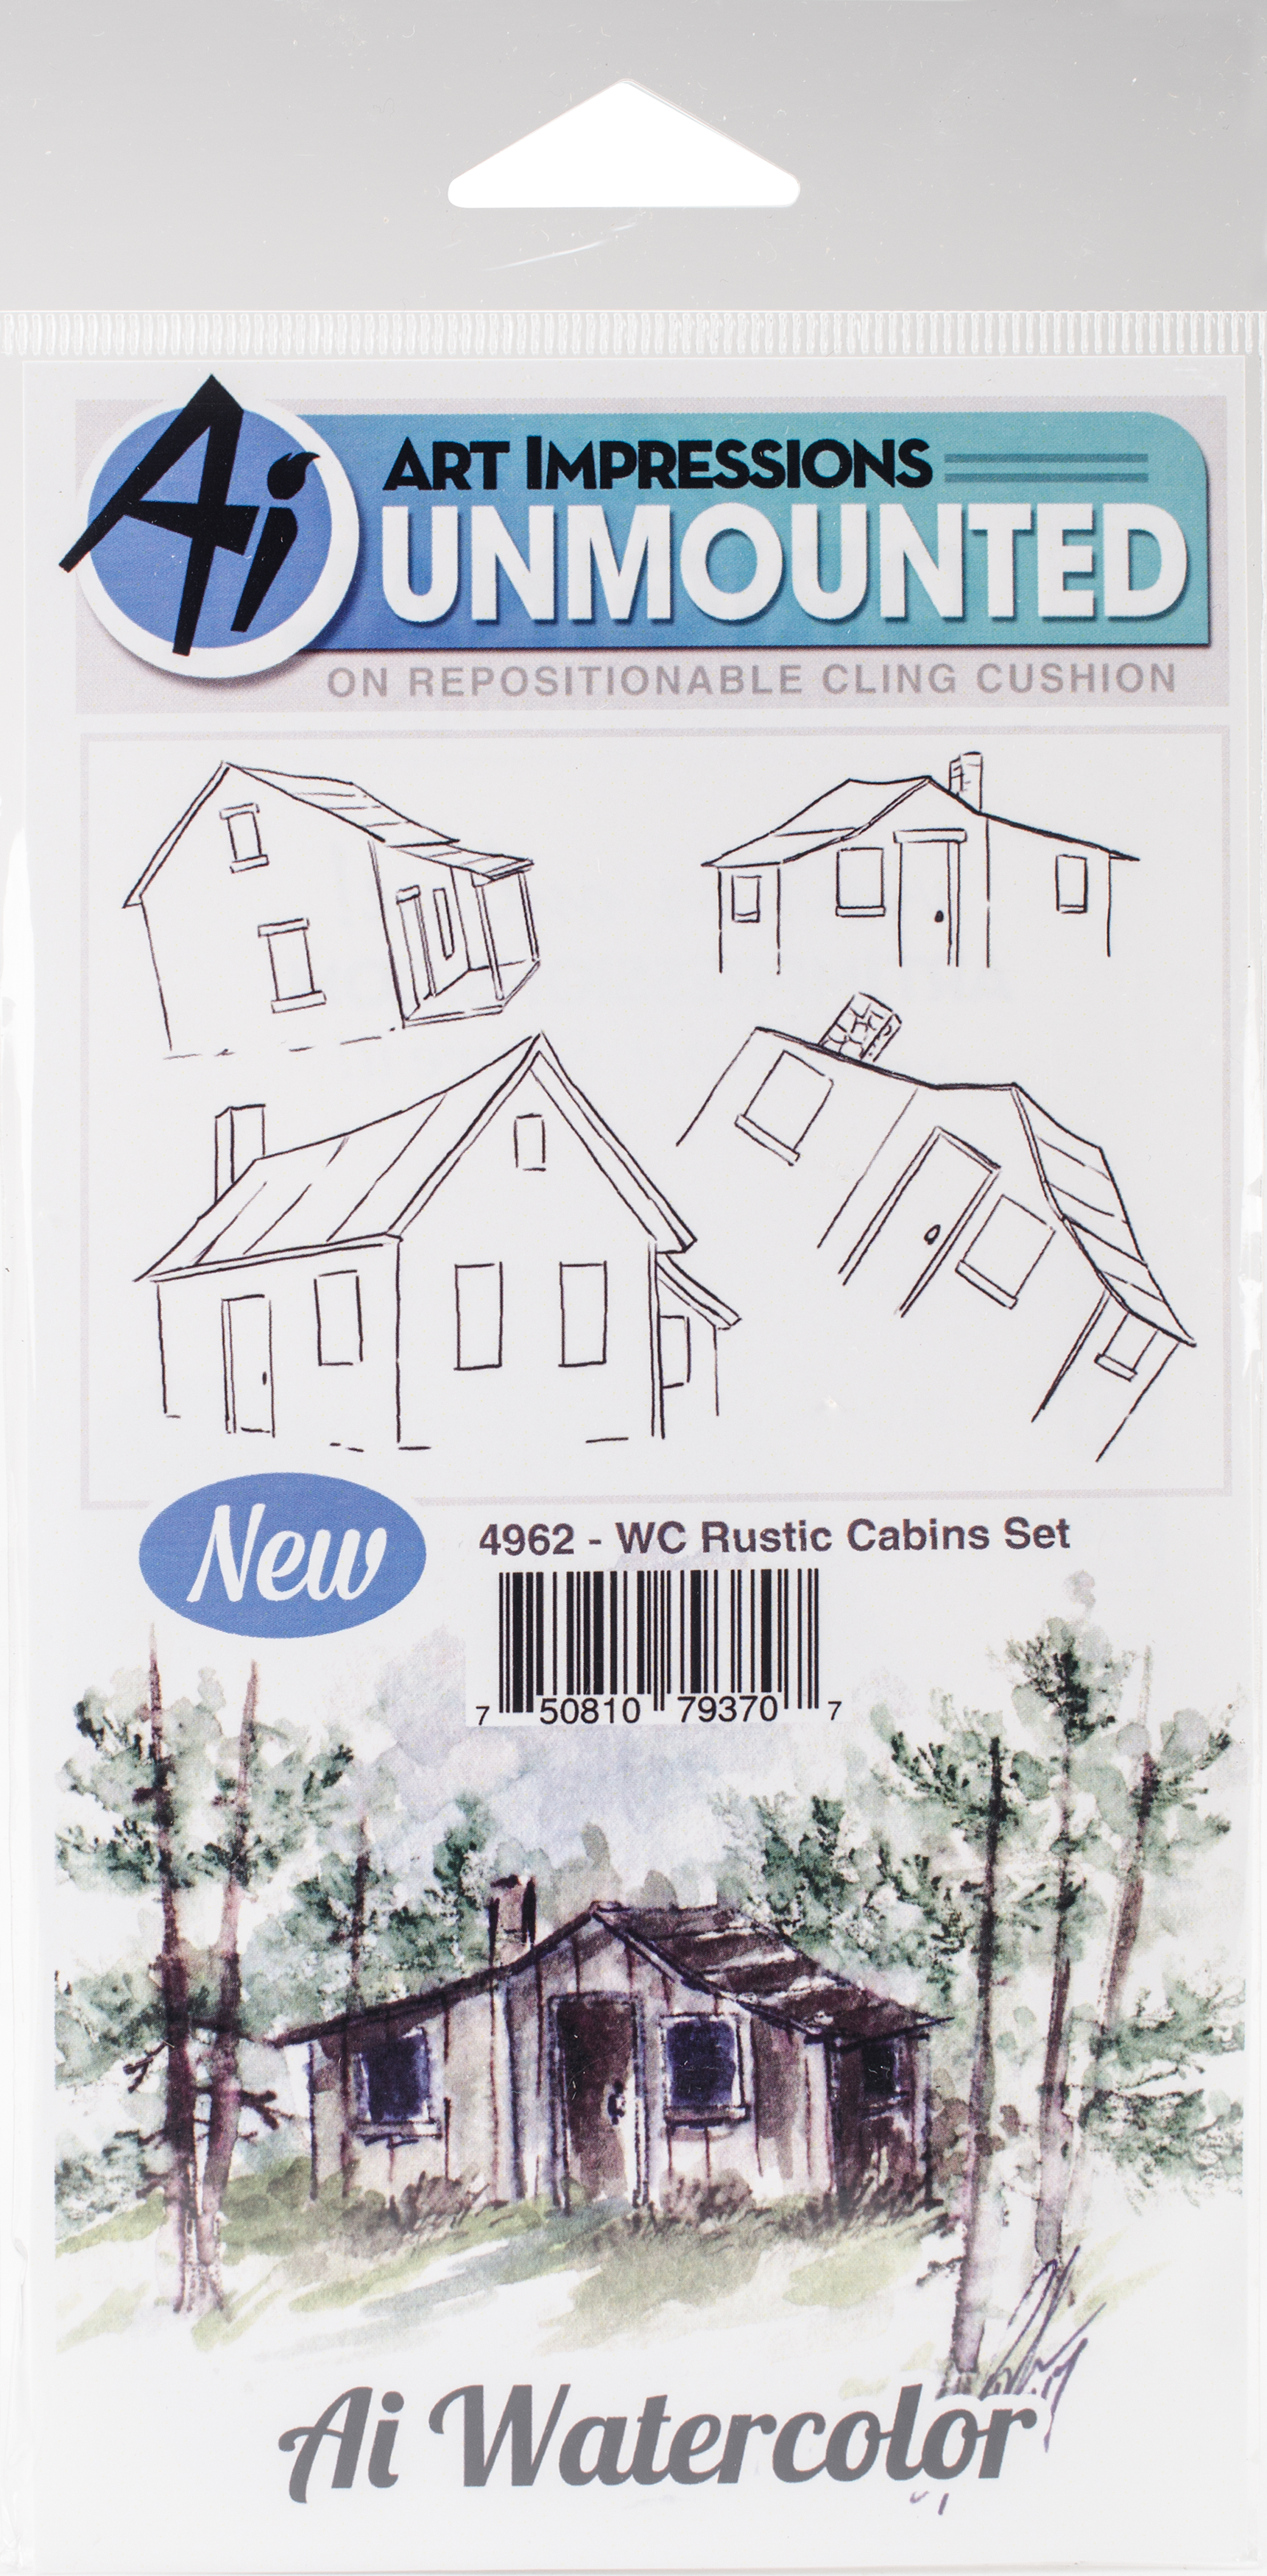 WC Rustic Cabins Set